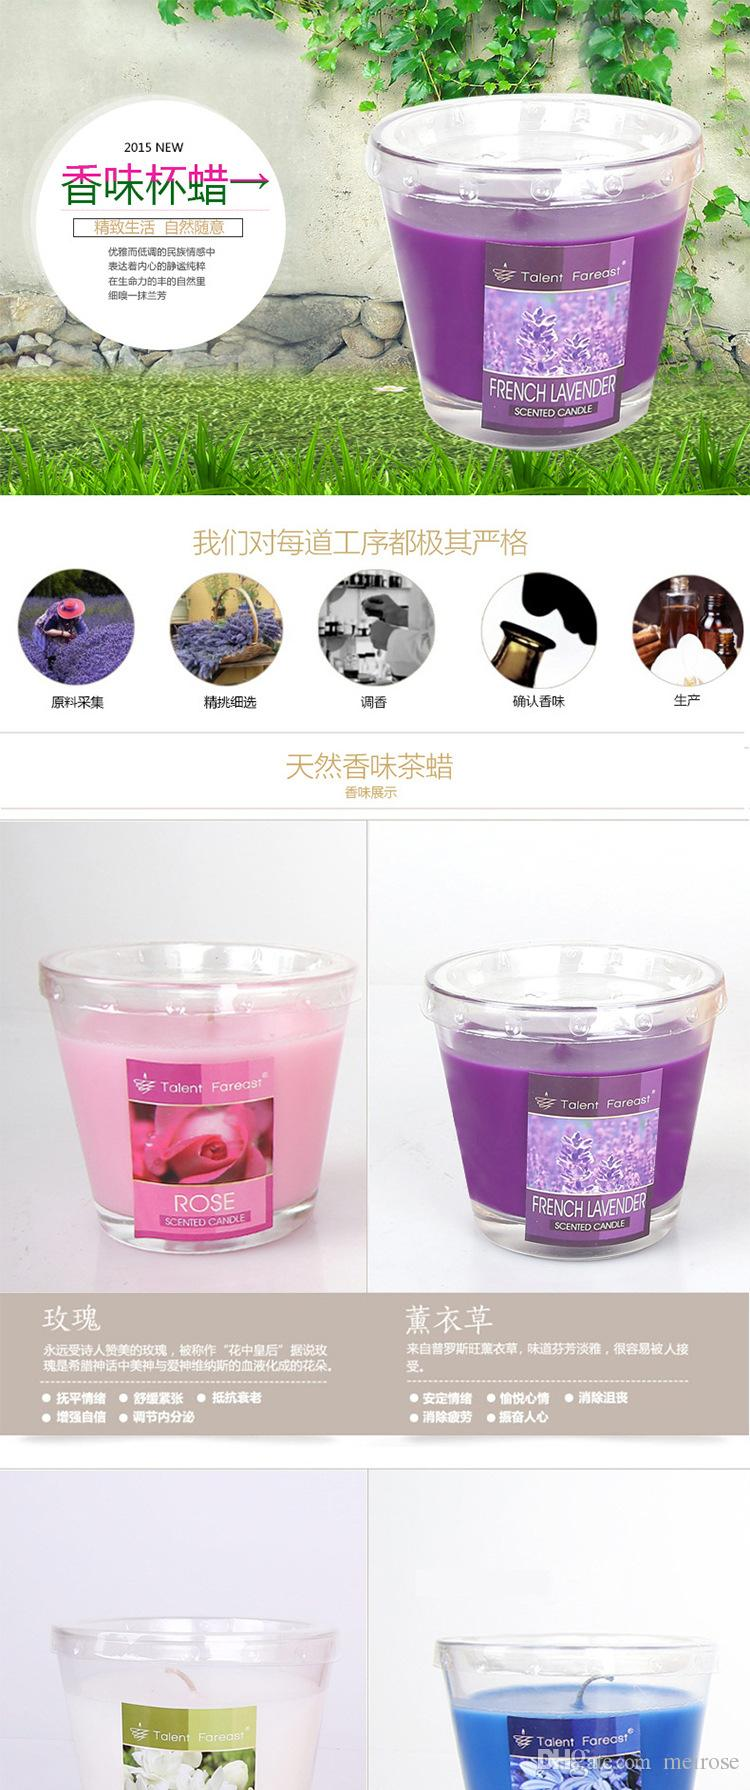 35 Hours Scented Candles Conicle Candle With A Variety Of Fragrance,Aroma Gel Wax Aromatherapy Candles Product Code :101-1009